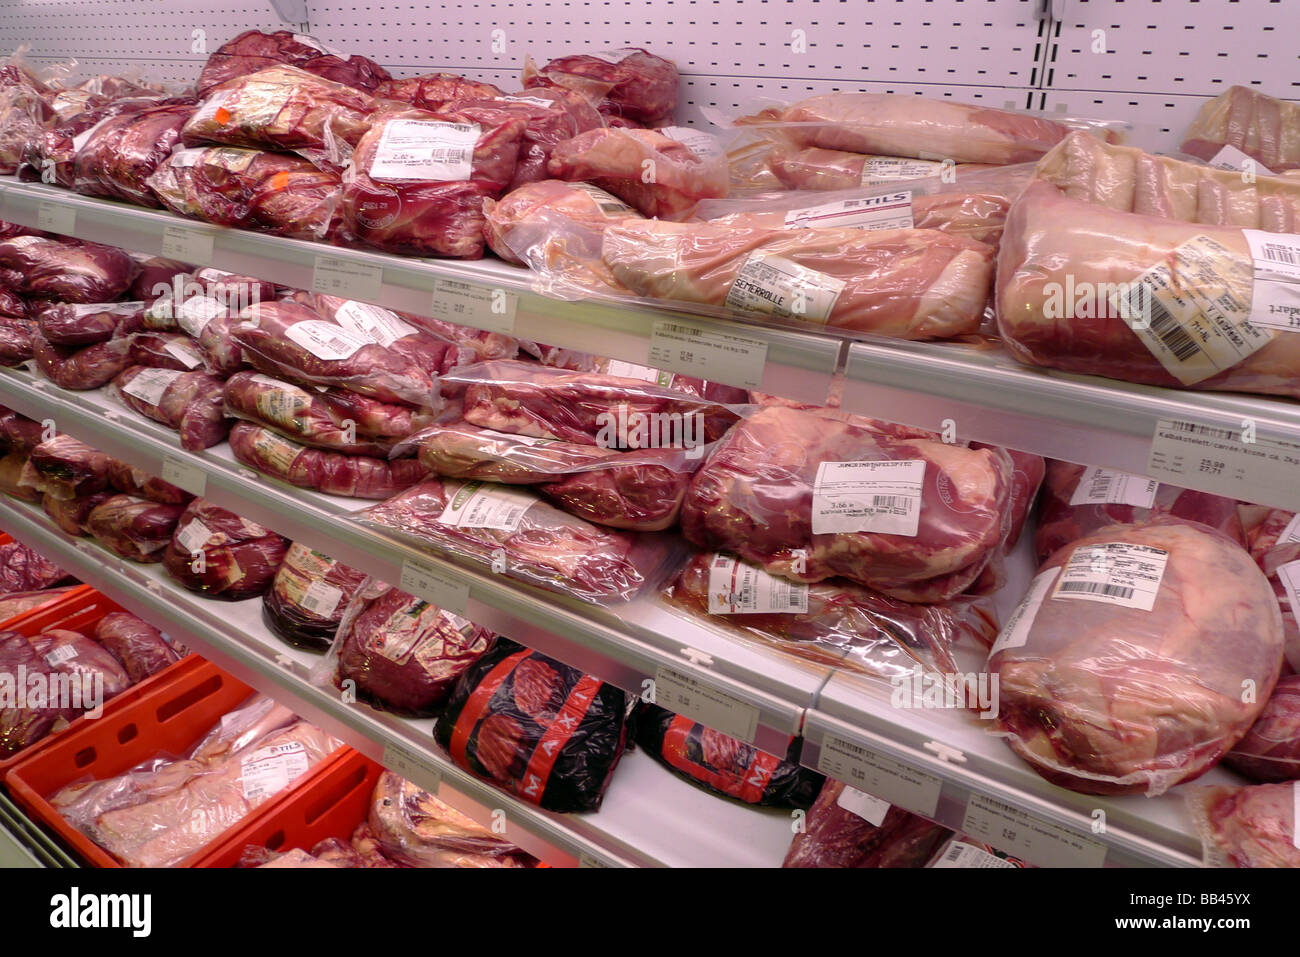 Meat bar at a supermarket - Stock Image